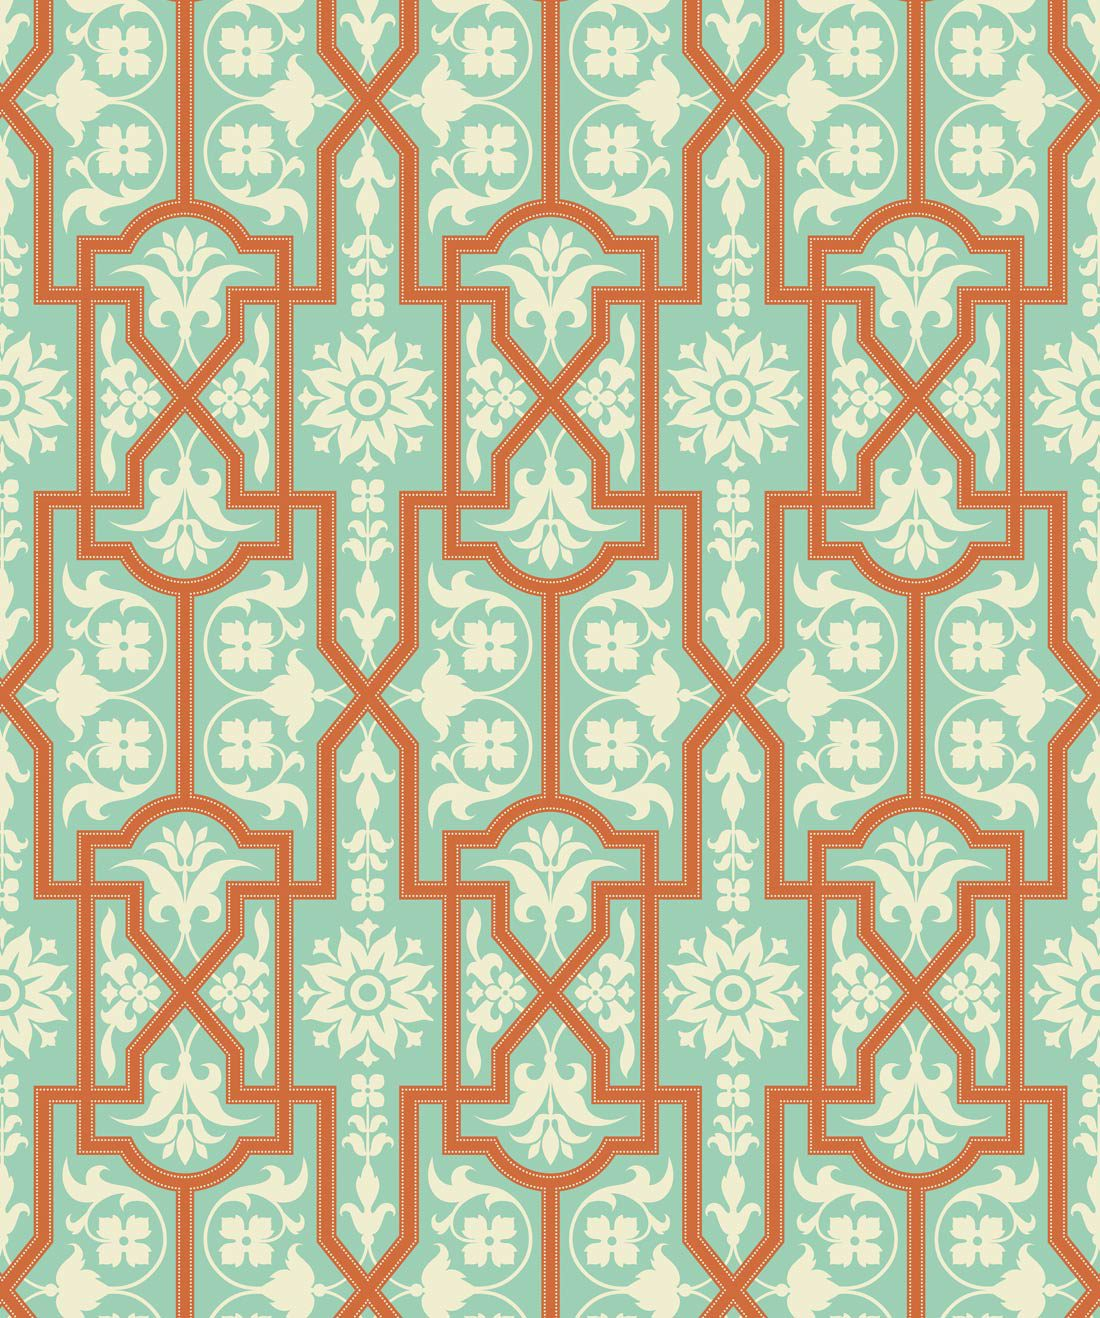 Architectural Apricot Wallpaper